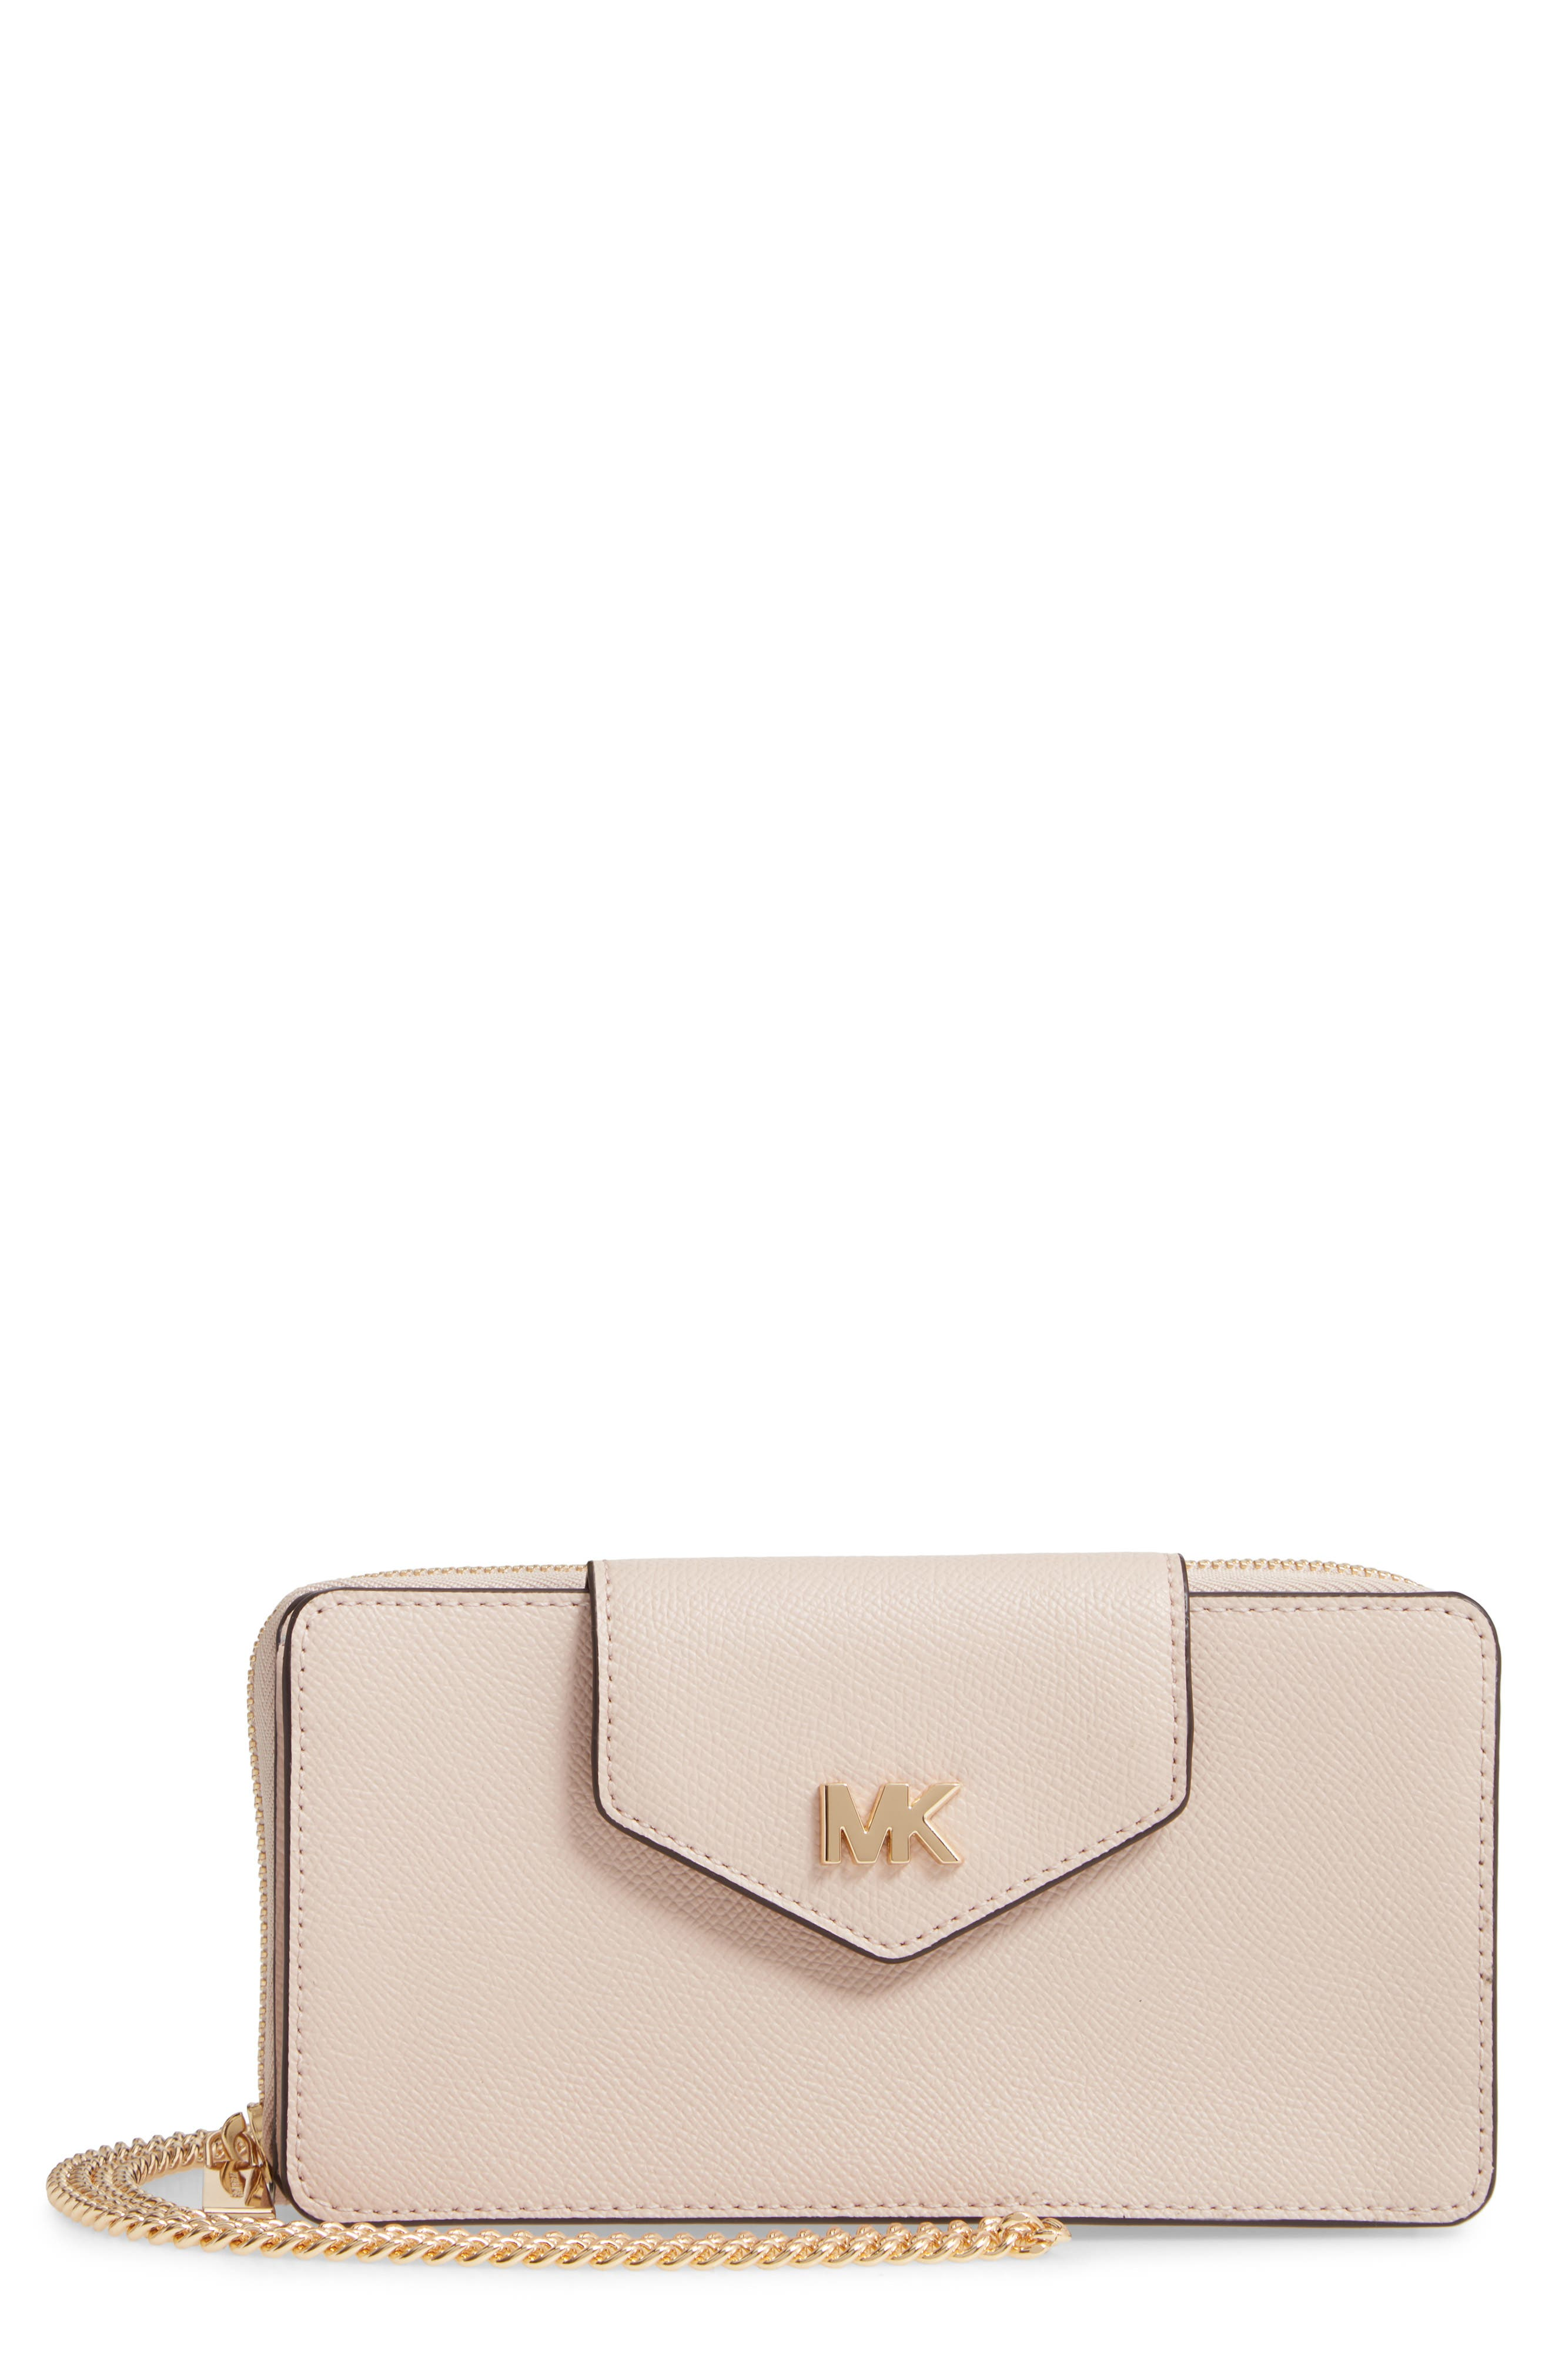 57412a010b96 MICHAEL Michael Kors Wallets & Card Cases for Women | Nordstrom